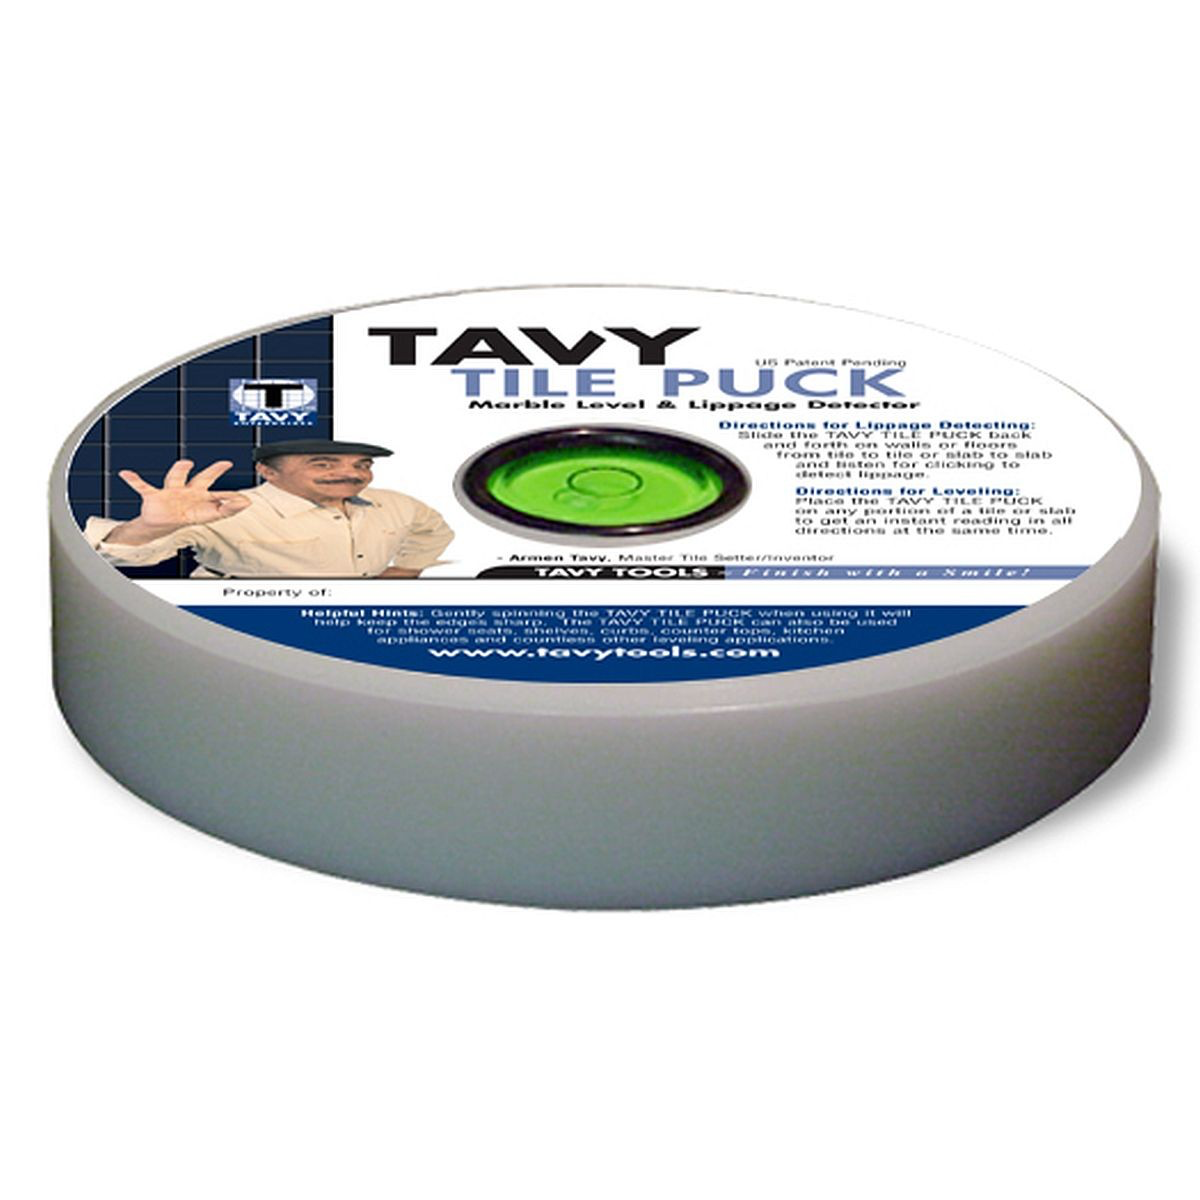 Tavy Tile Puck Leveling Tool Shower Seats Tiles Puck